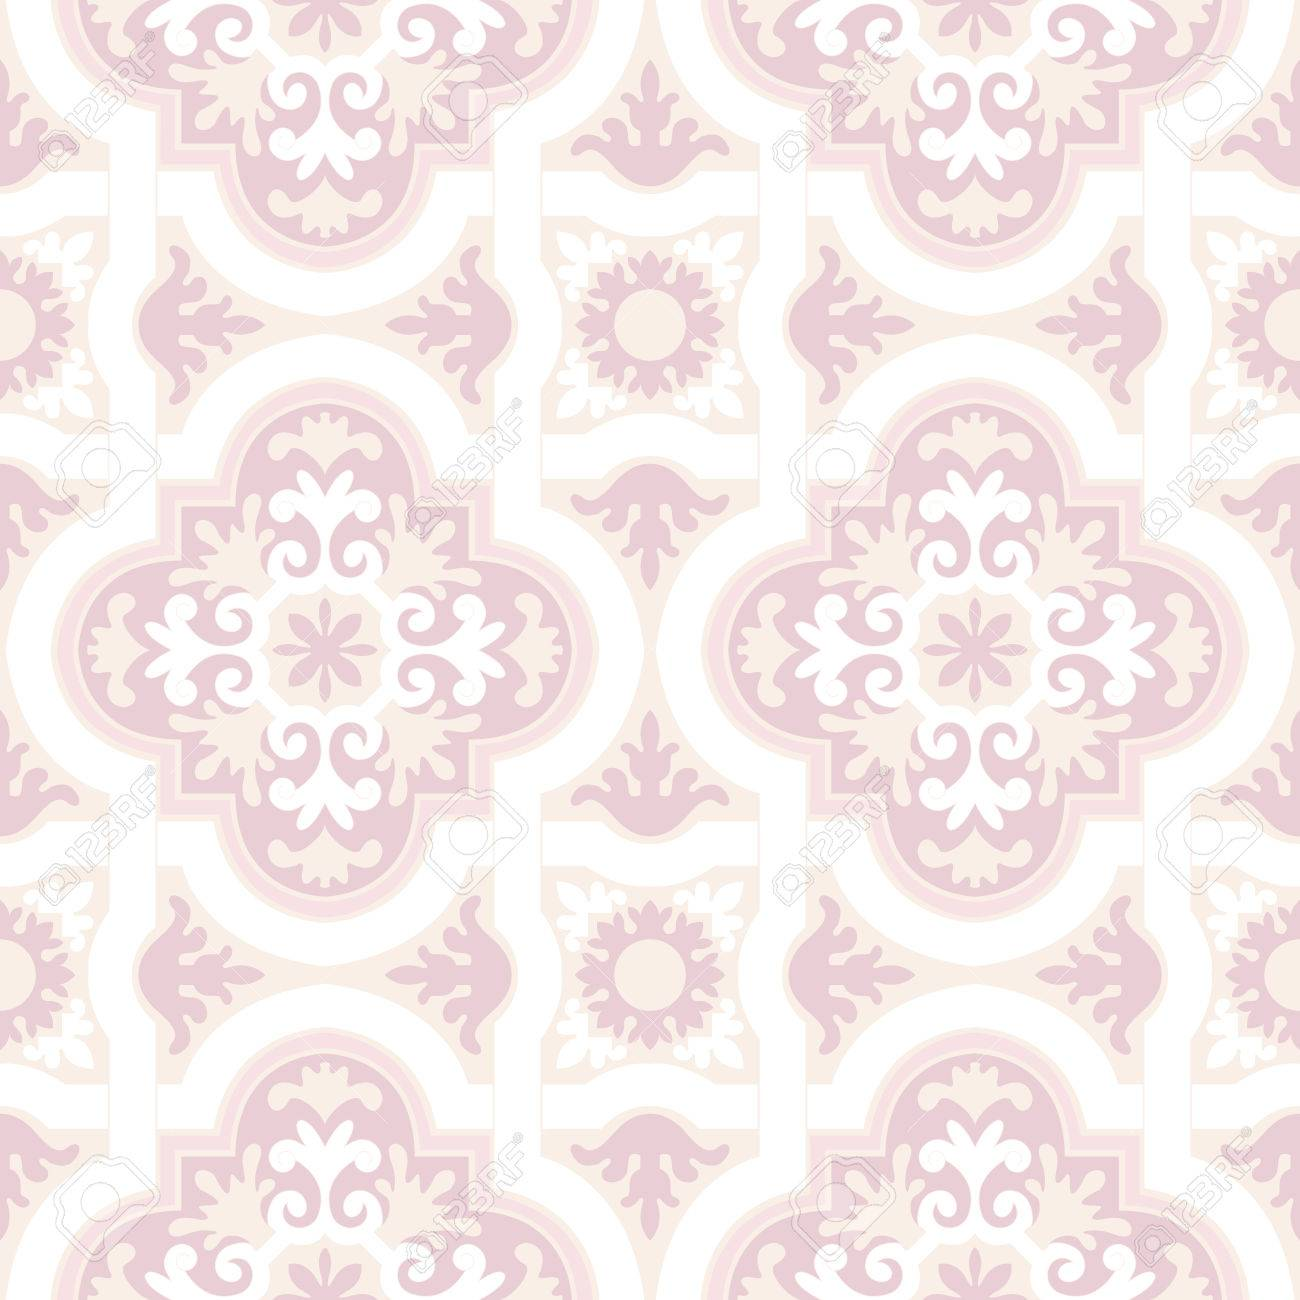 Background Vintage Flower Seamless Floral Pattern Abstract Wallpaper Texture Royal Vector Fabric